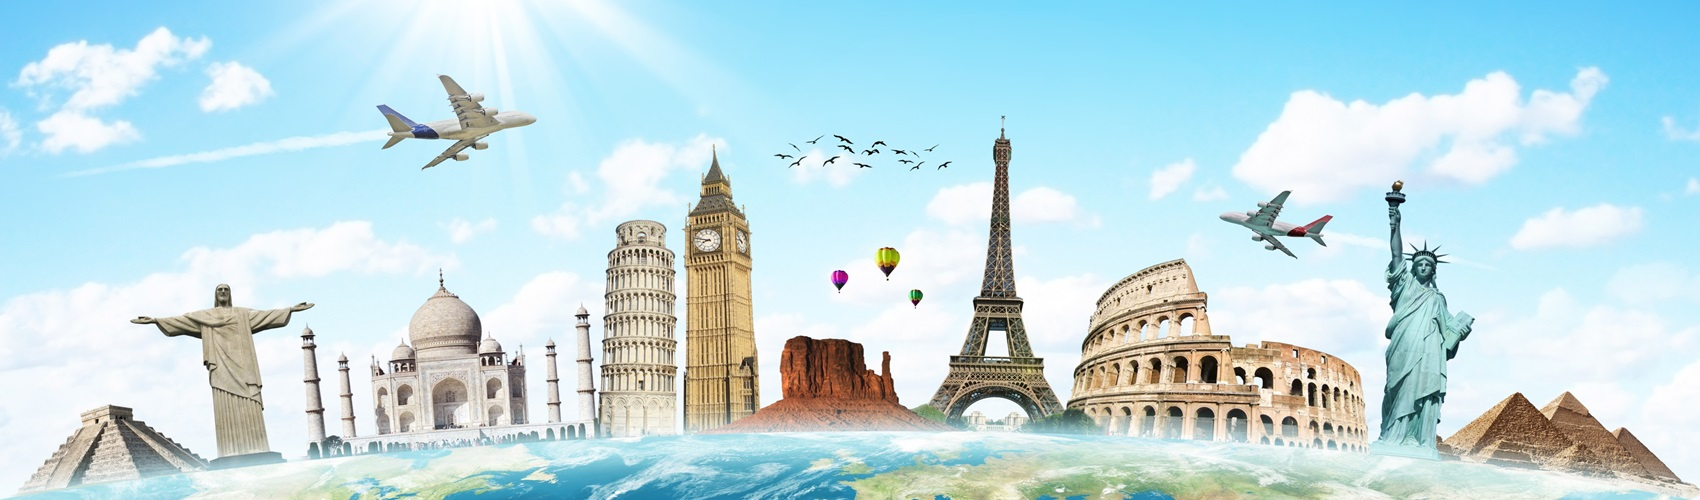 essay about traveling around the world Free essay: in the nineteenth century, it seemed impossible to circumnavigate the world in only eighty days that, however, was exactly what phileas fogg did.